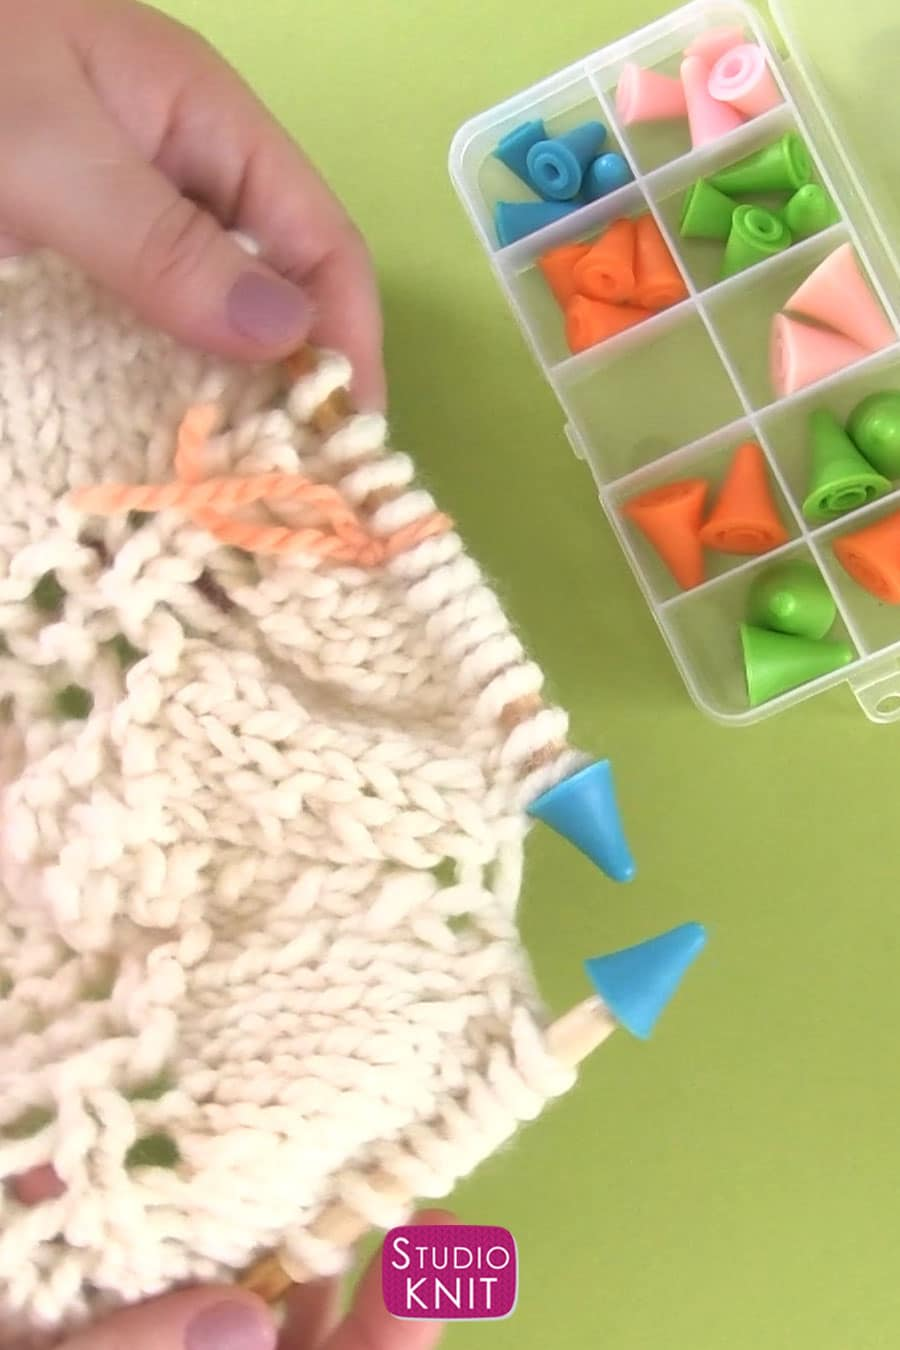 Knitting Needle Point Protectors help prevent knitting mistakes